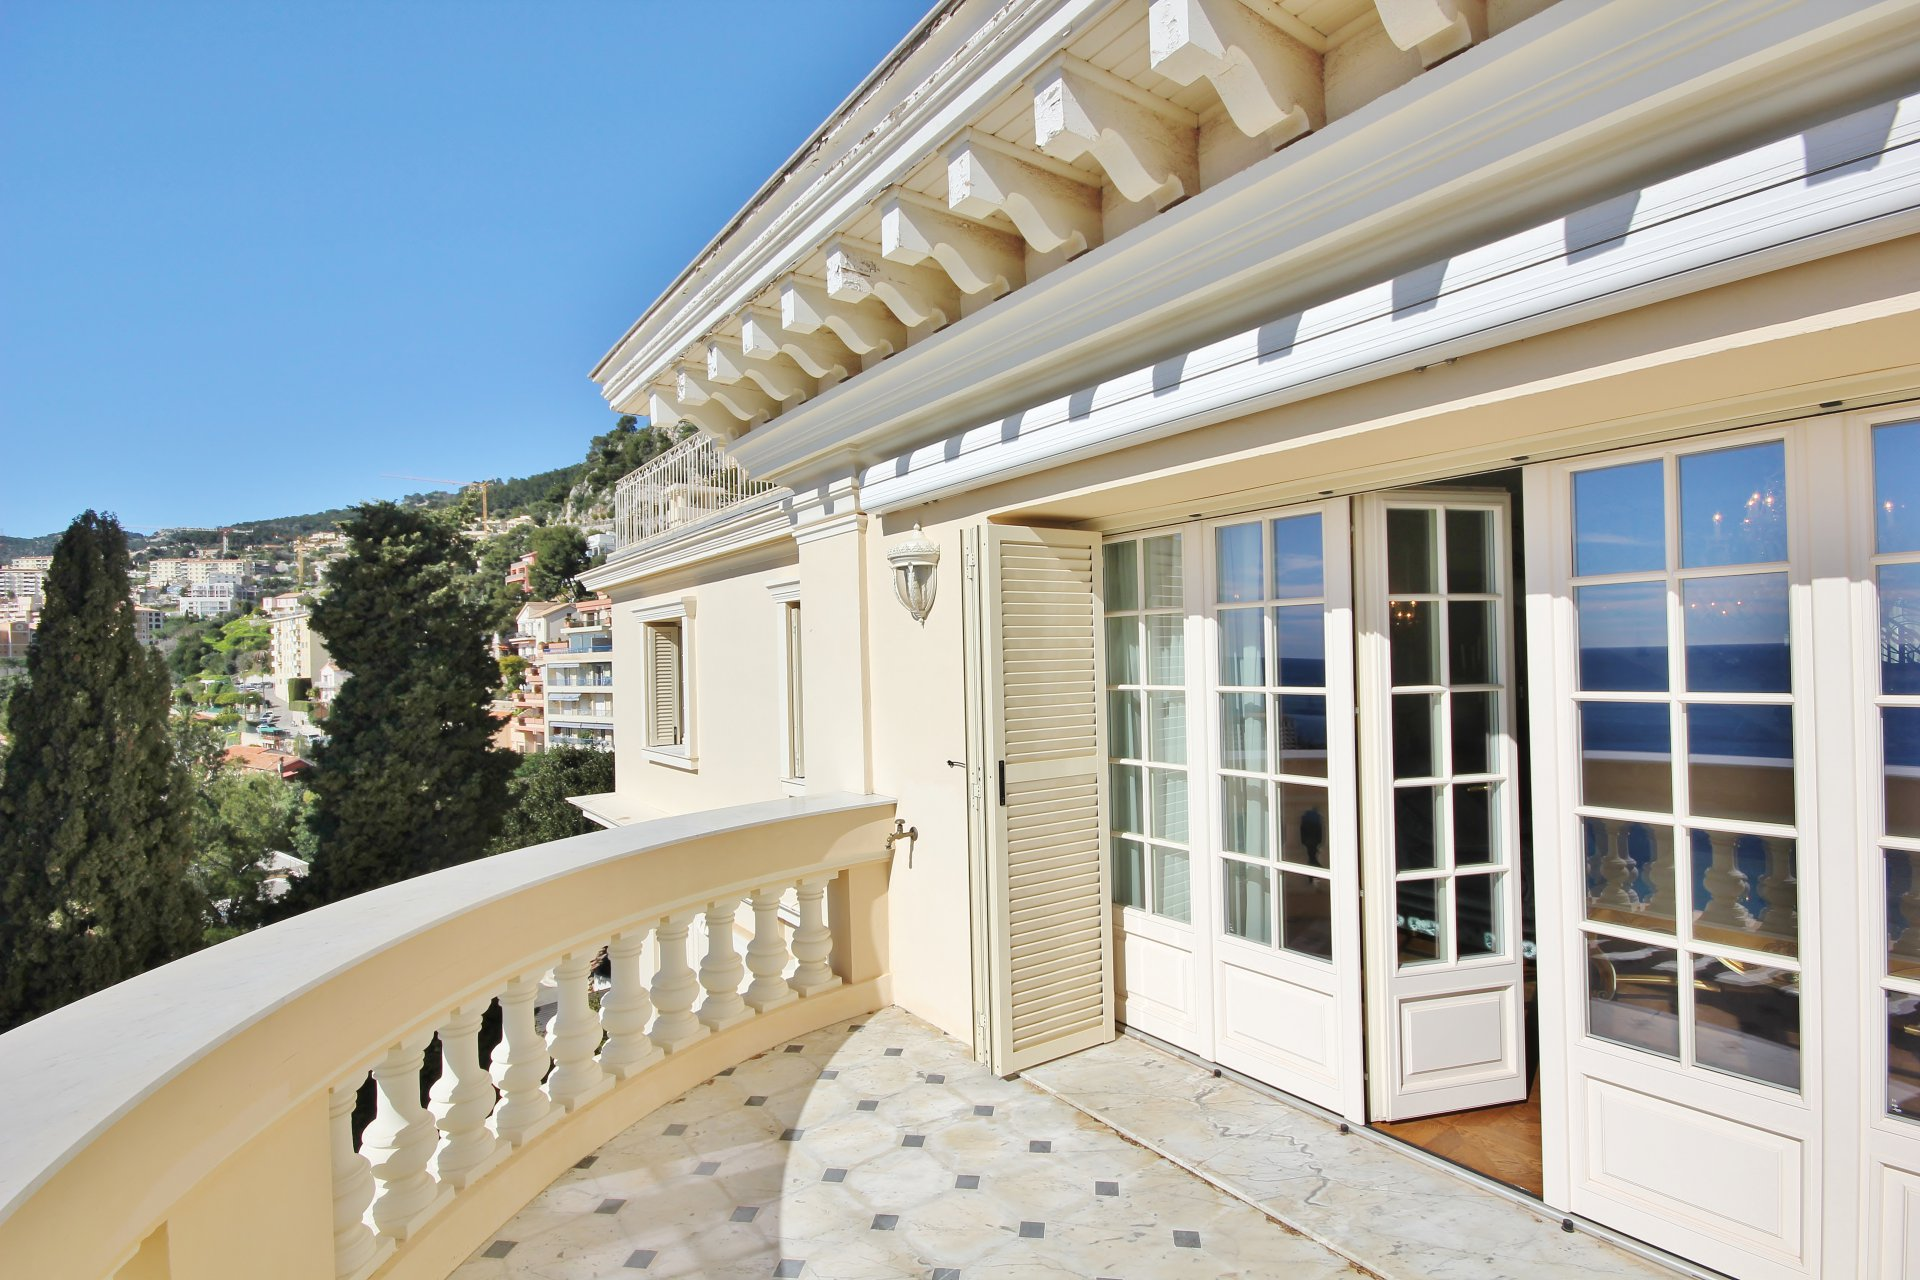 Close to Monaco - Superb penthouse overlooking the sea